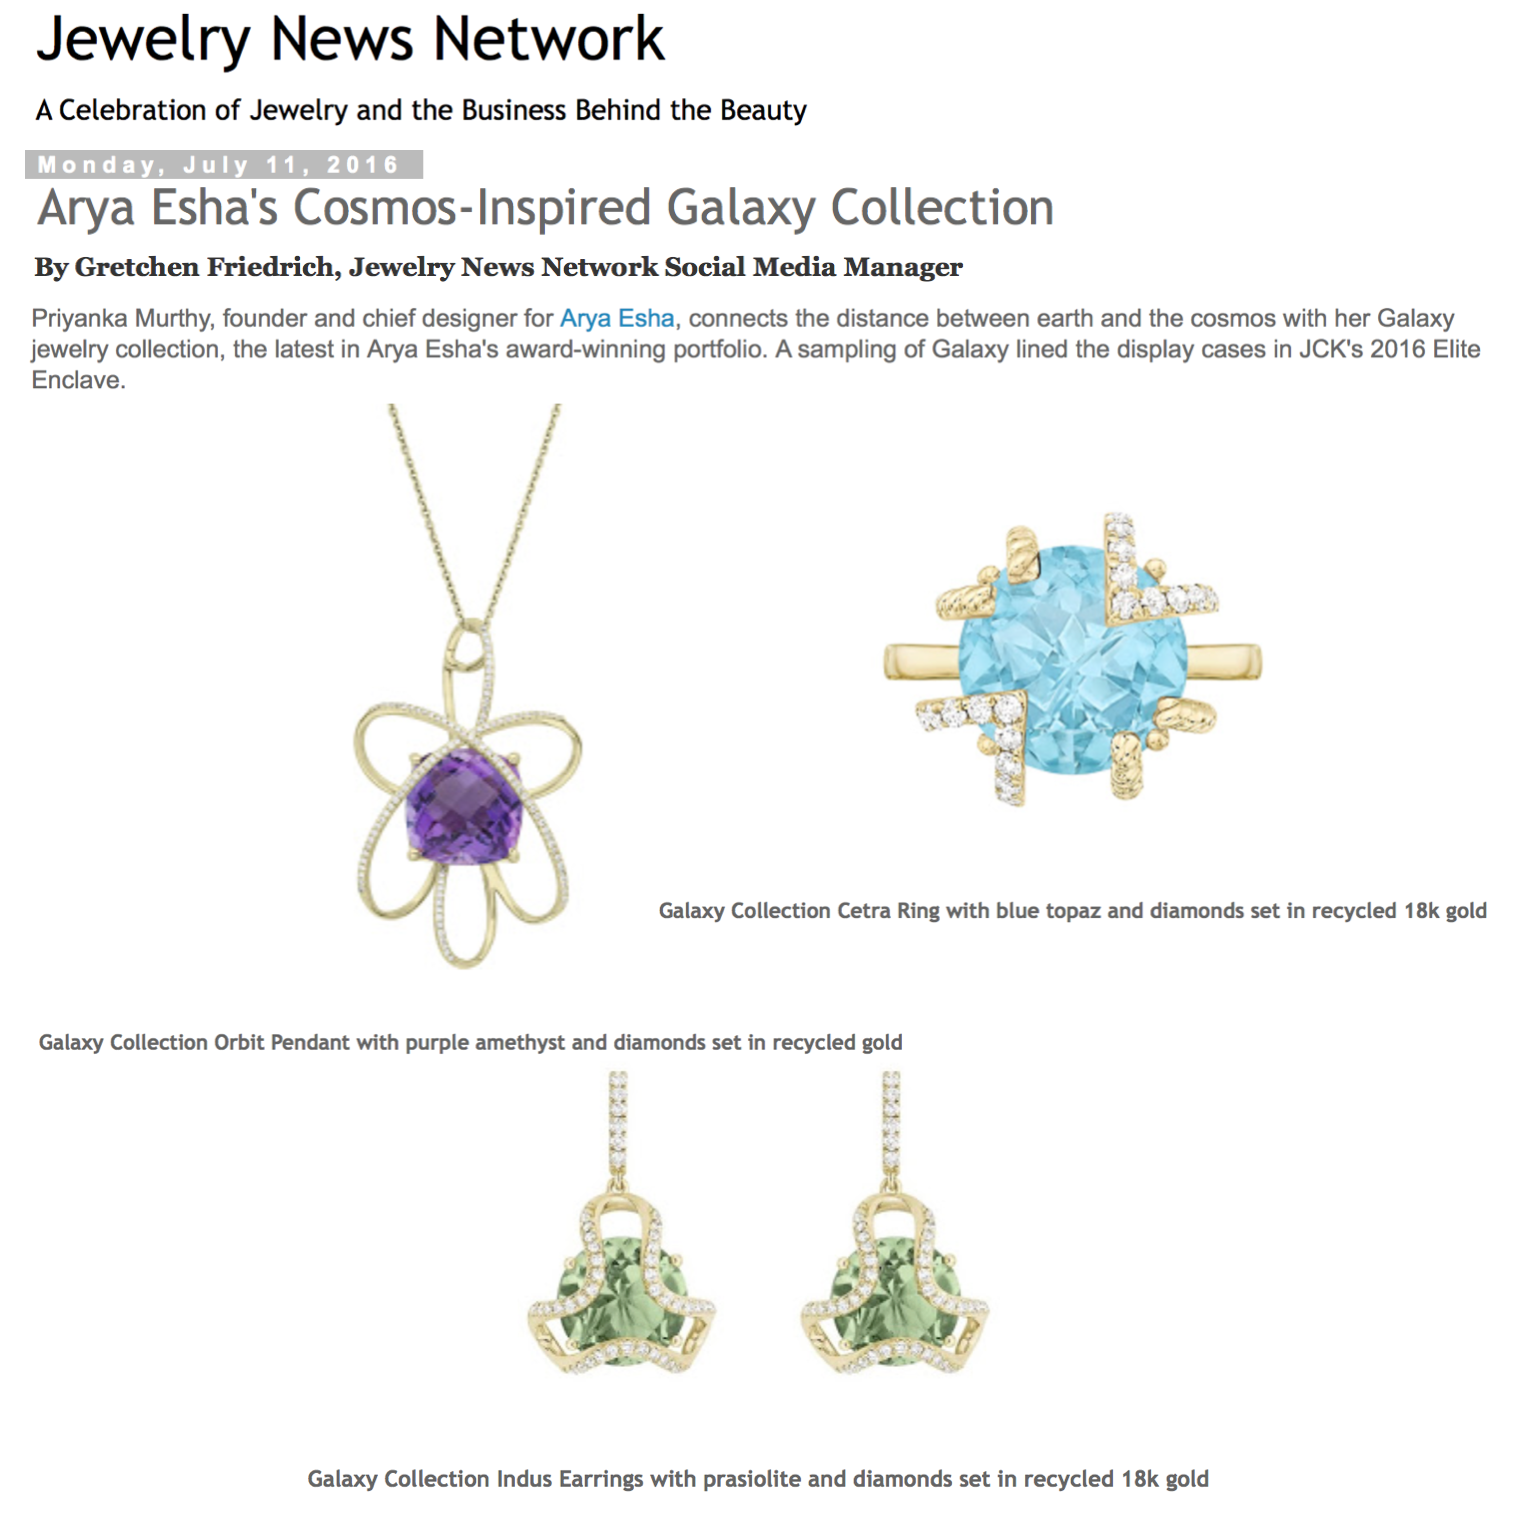 Spotlight on Arya Esha's Cosmos Inspired Galaxy Collection  at Jewelery News Network